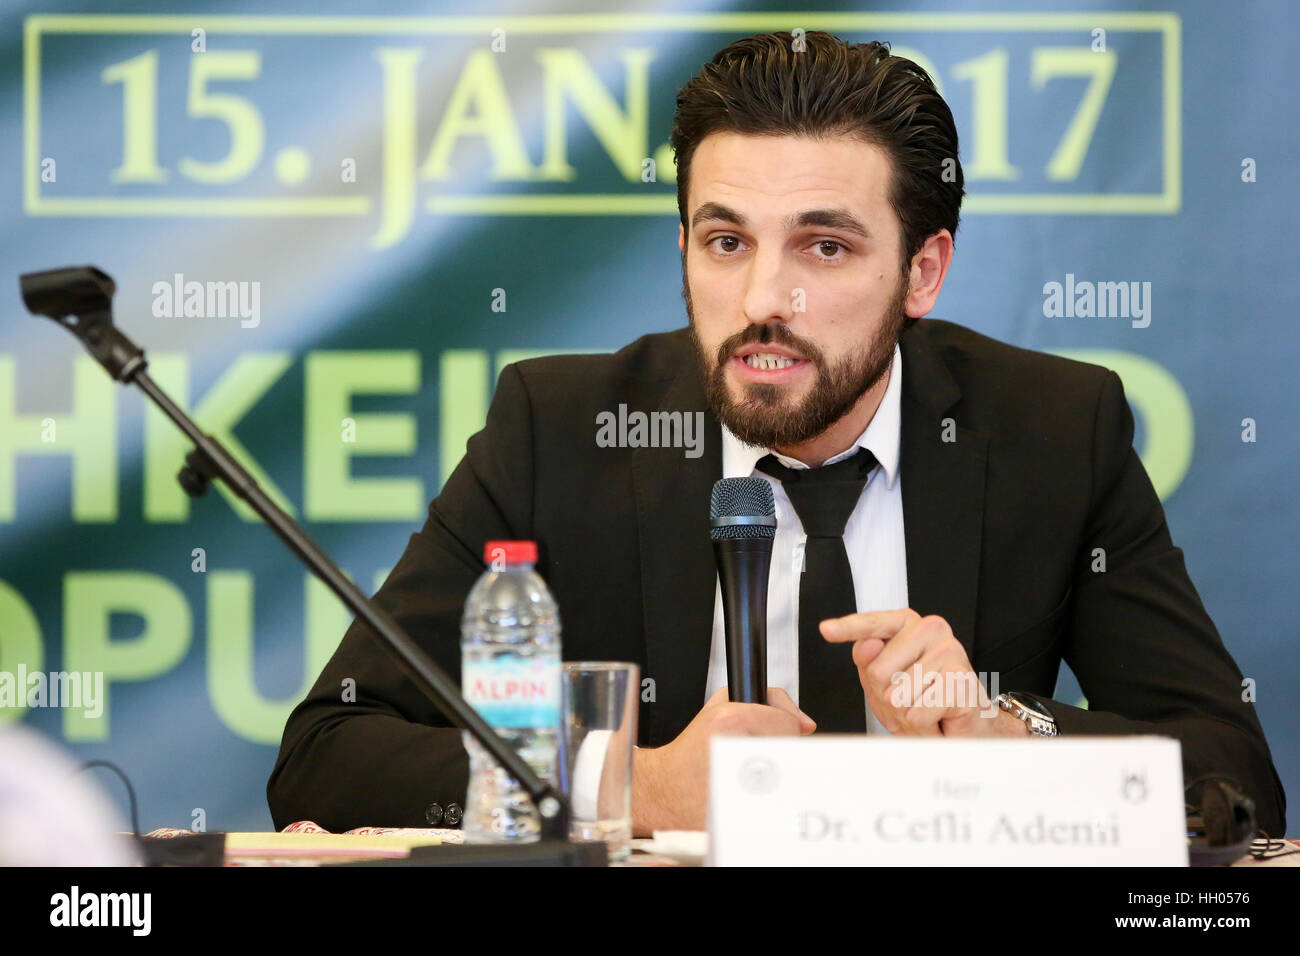 Hamburg, Germany. 15th Jan, 2017. Cefli Ademi of the University of Muenster speaks during a conference of the Shura, Stock Photo